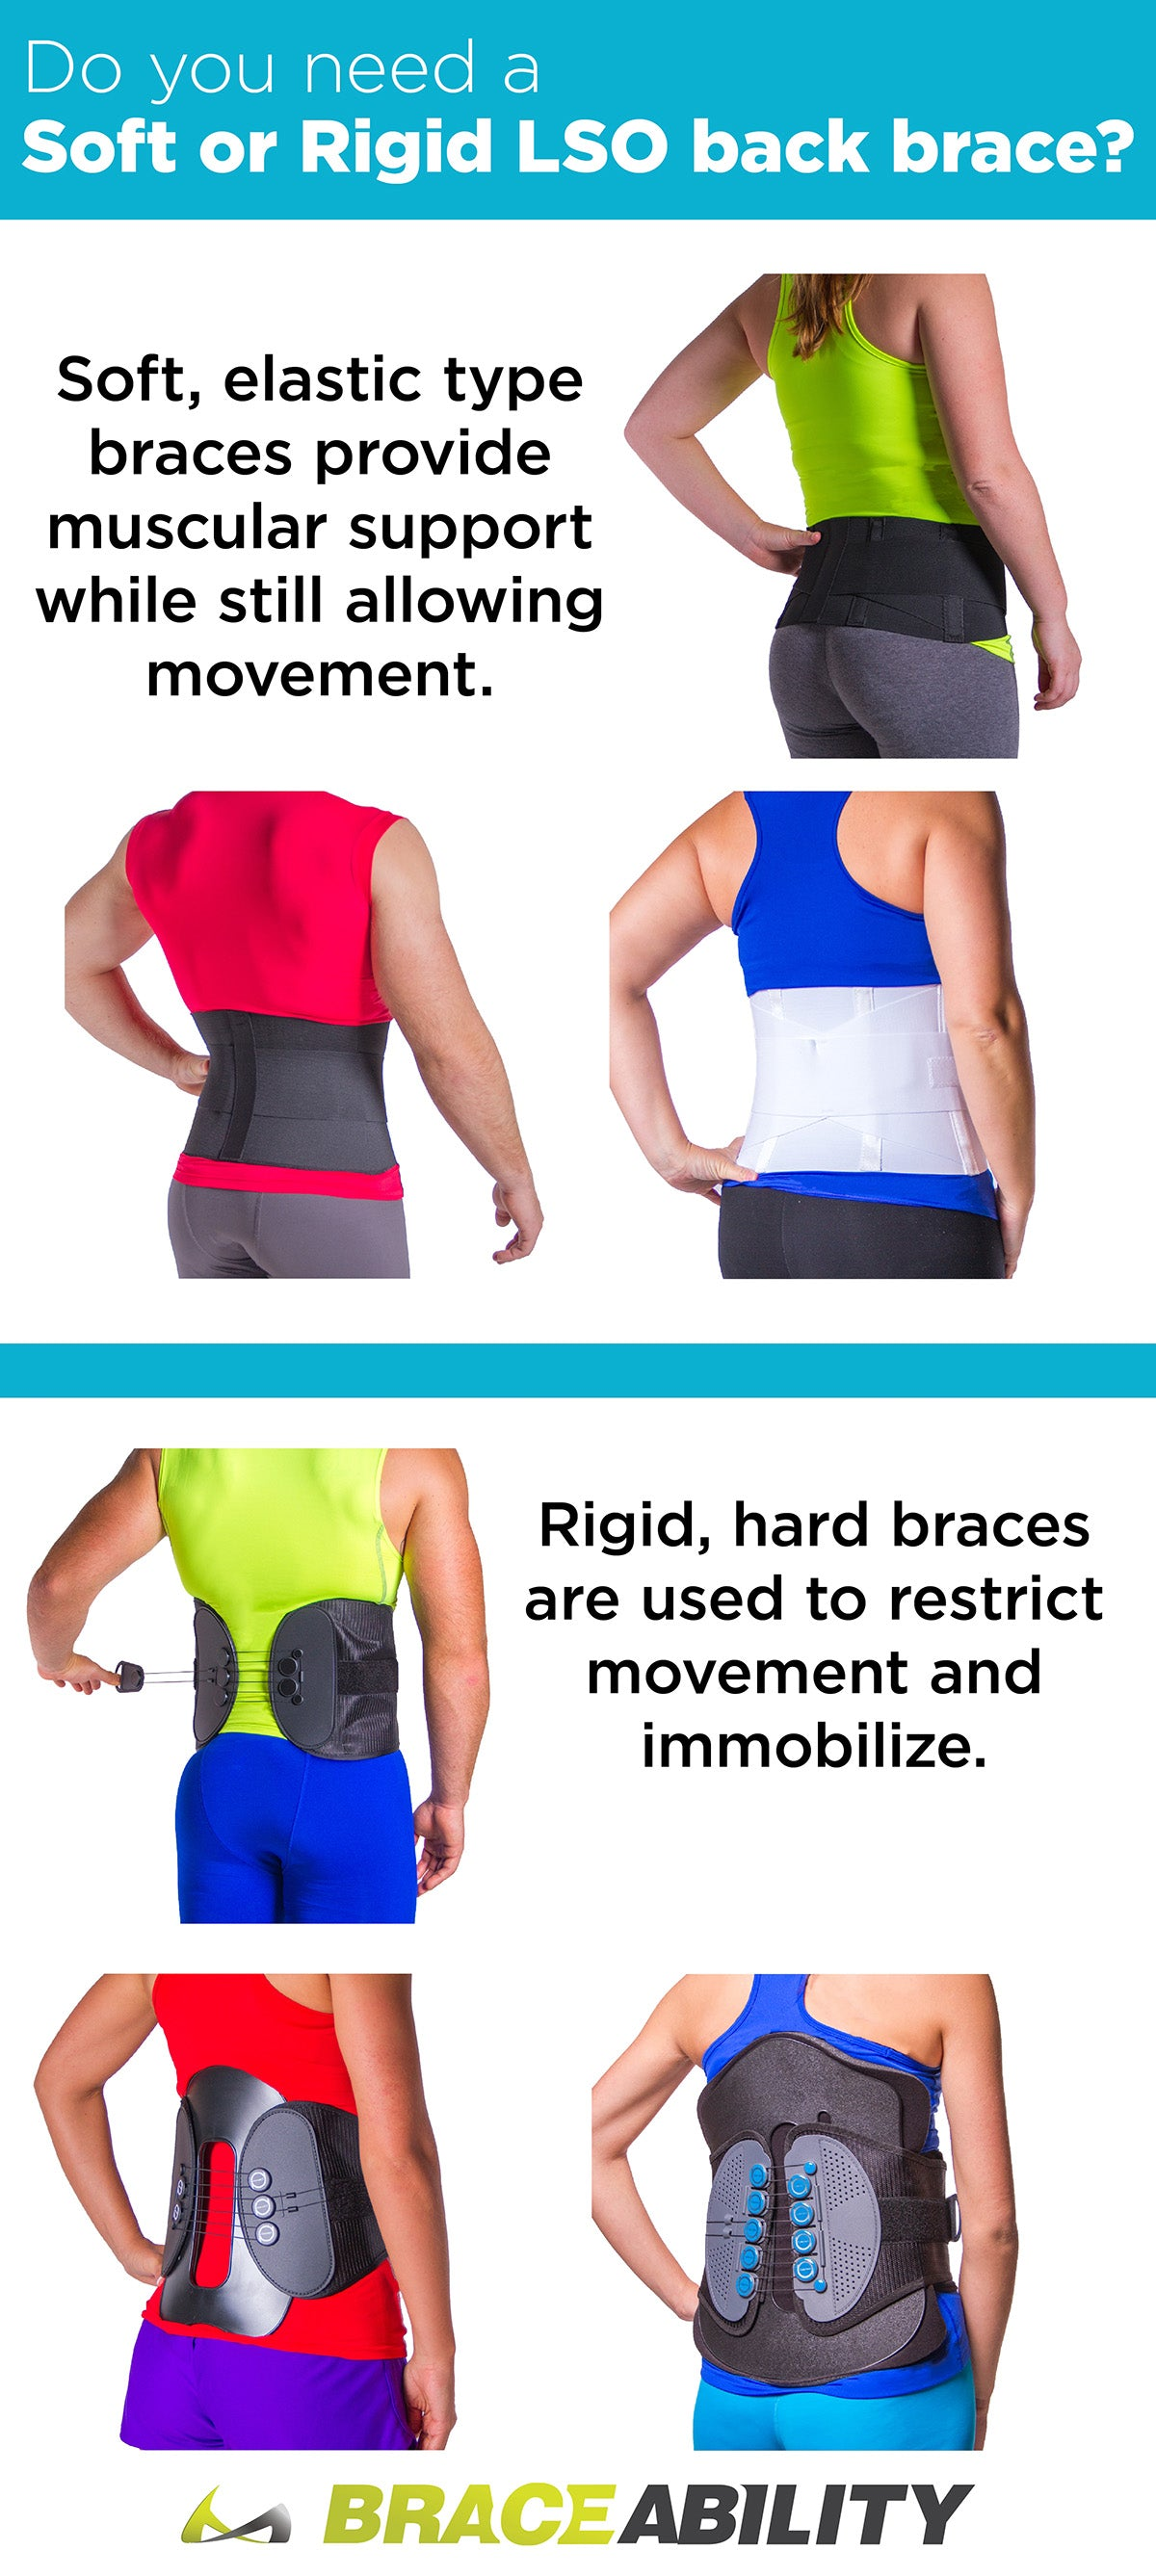 How to tell if you need to use a soft corset or rigid LSO for lumbosacral injuries